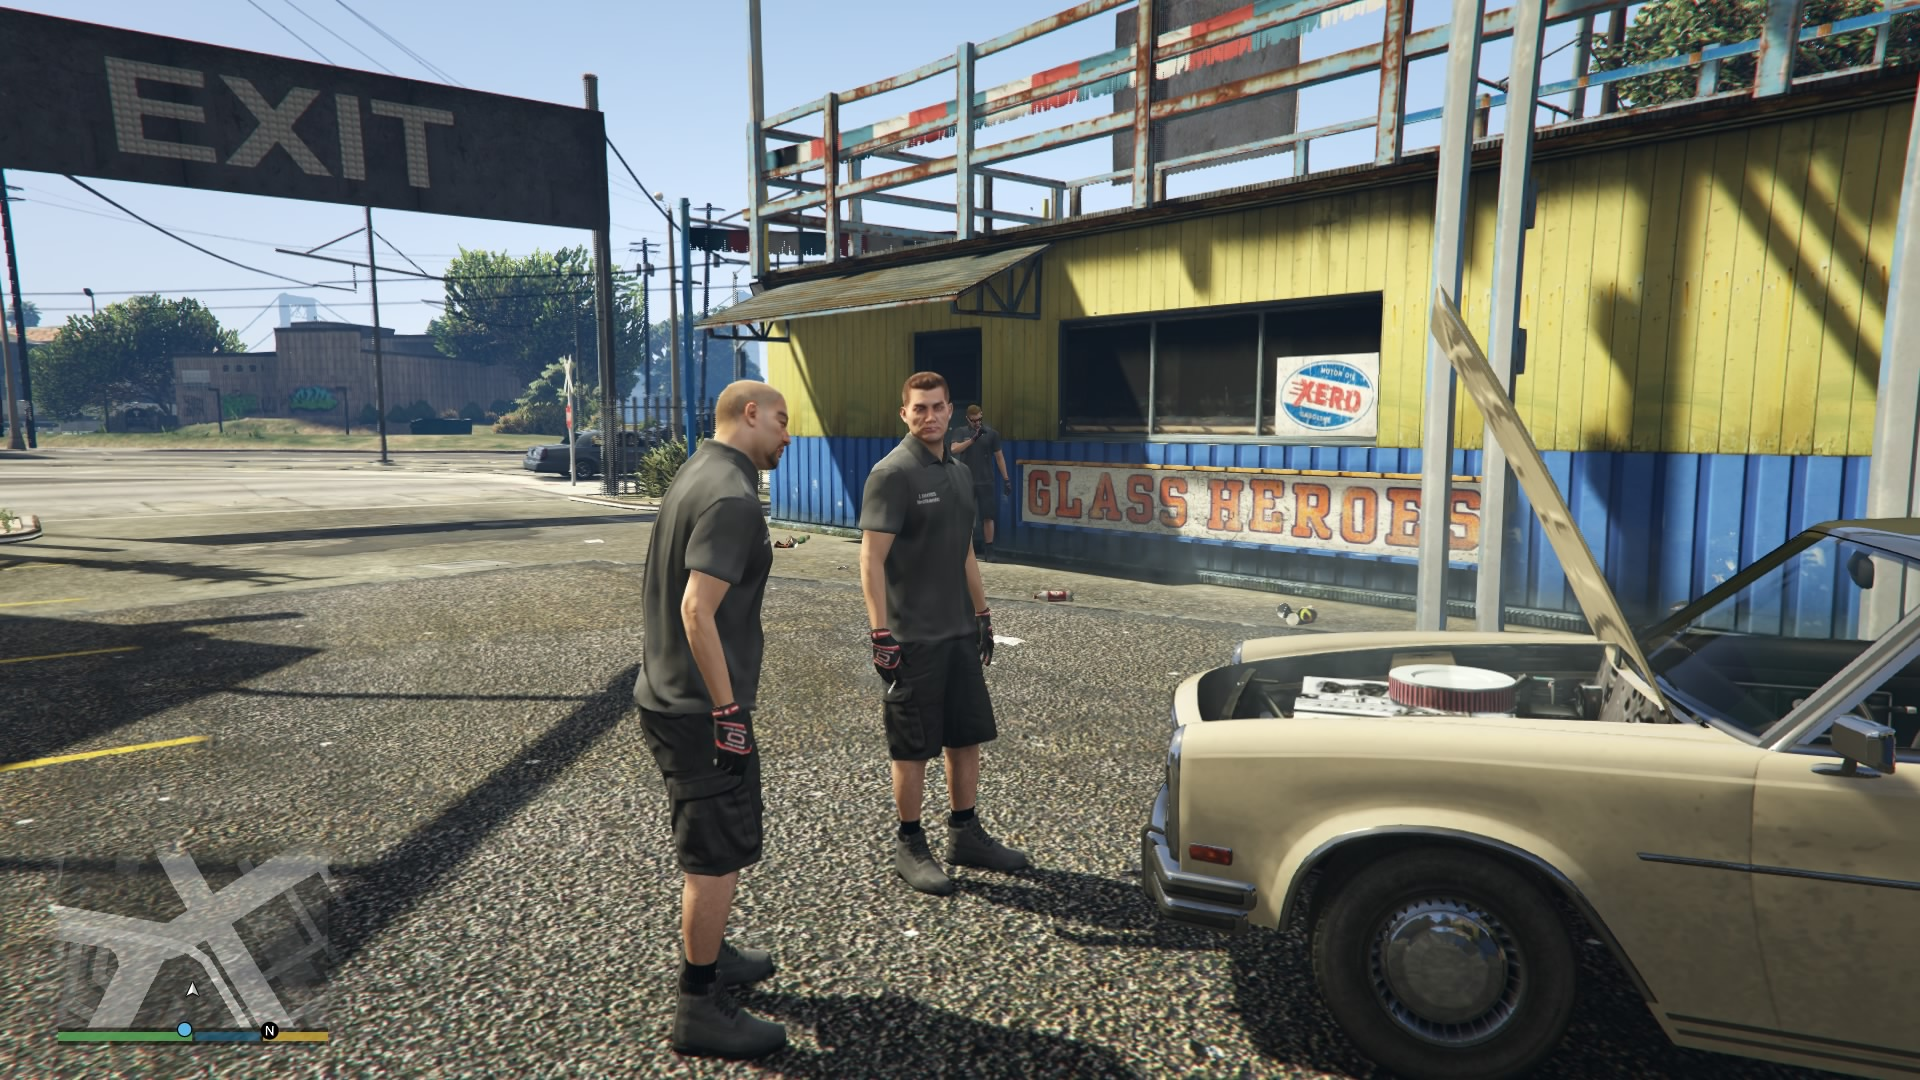 11 Things That Could Make Gta 6 Epic Gamers Decide